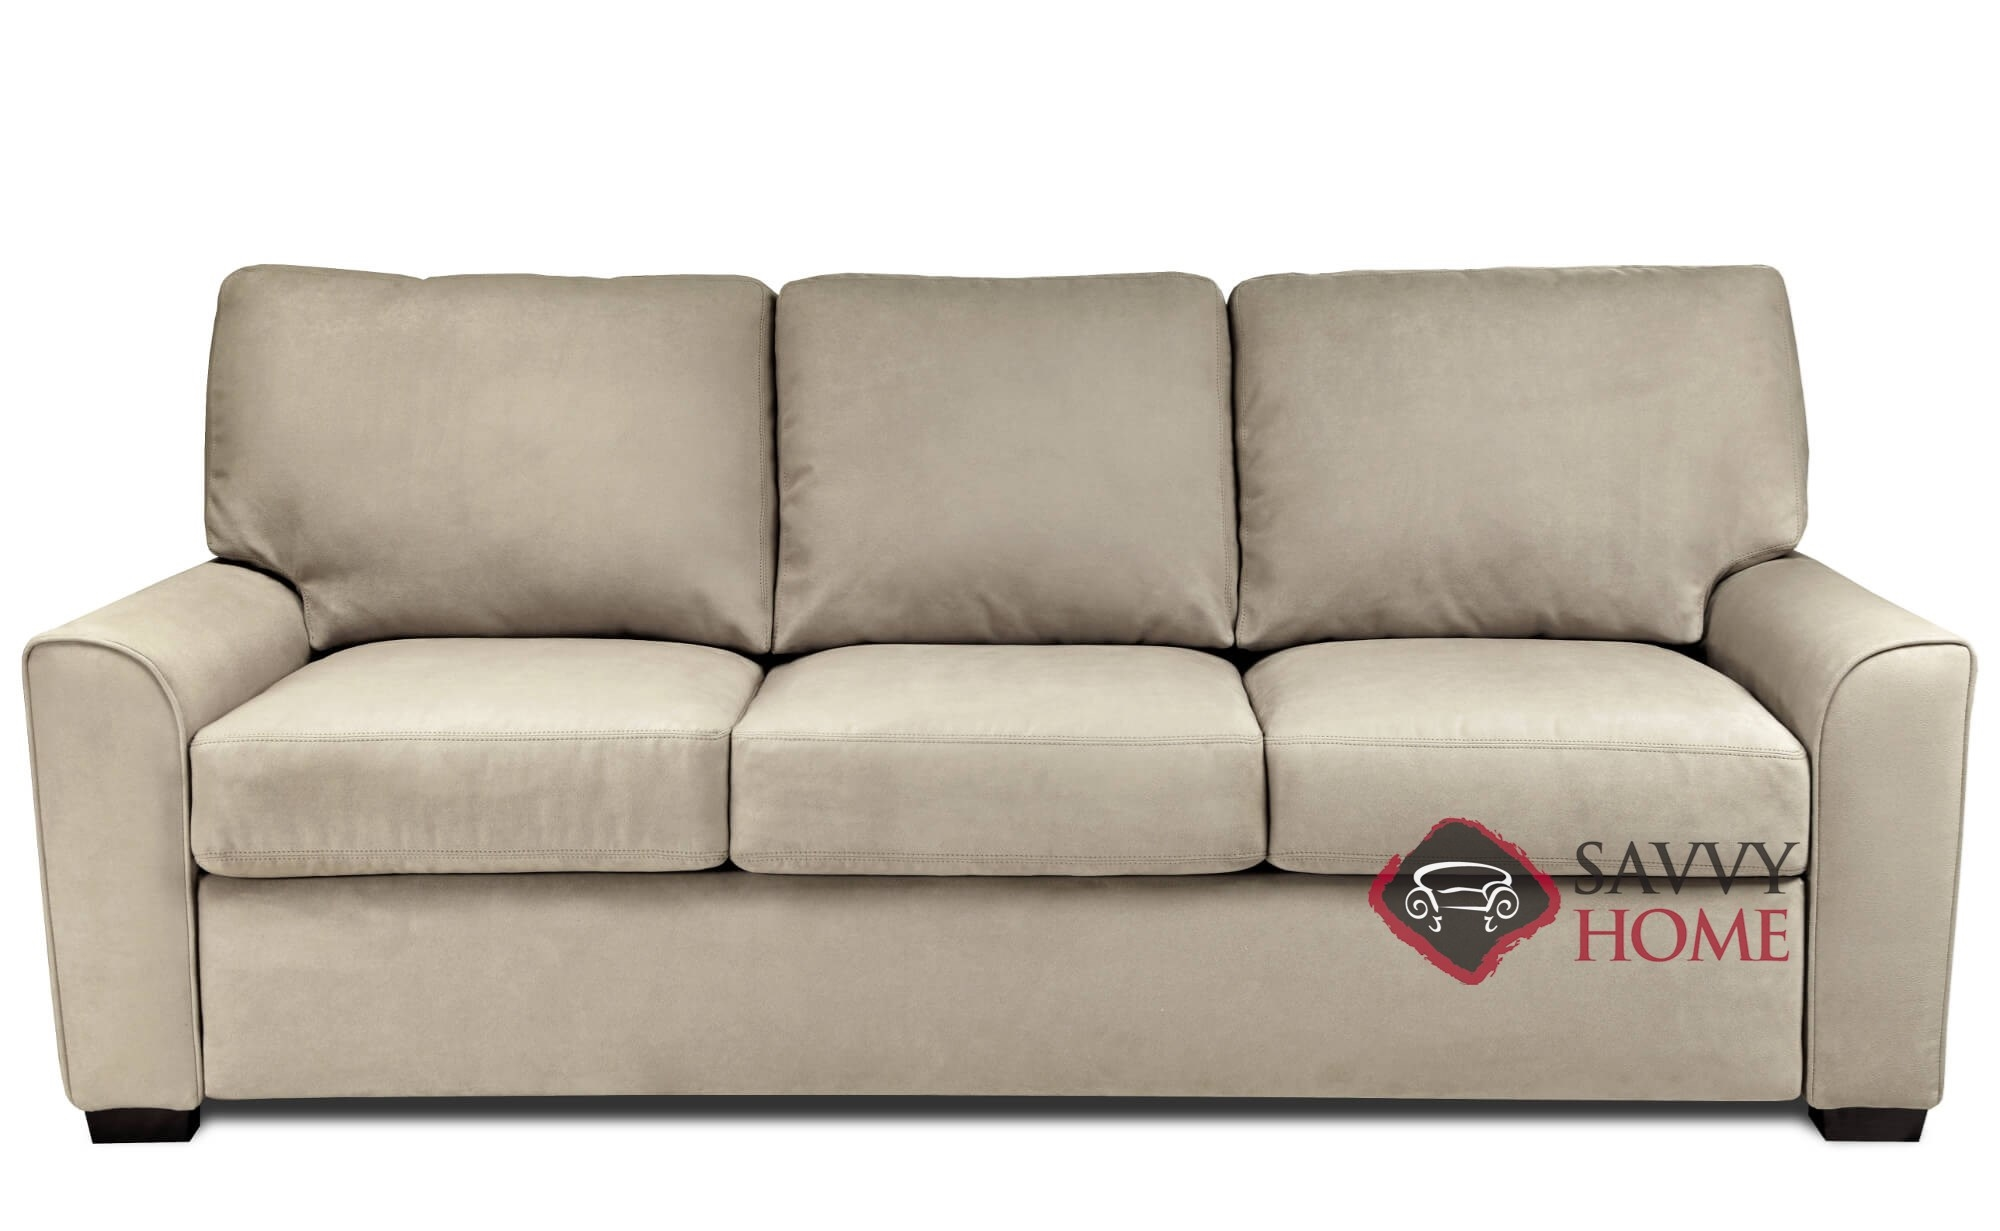 Sofa Klein Klein Low Leg Comfort Sleeper By American Leather Generation Viii All Sizes Formerly Kalyn